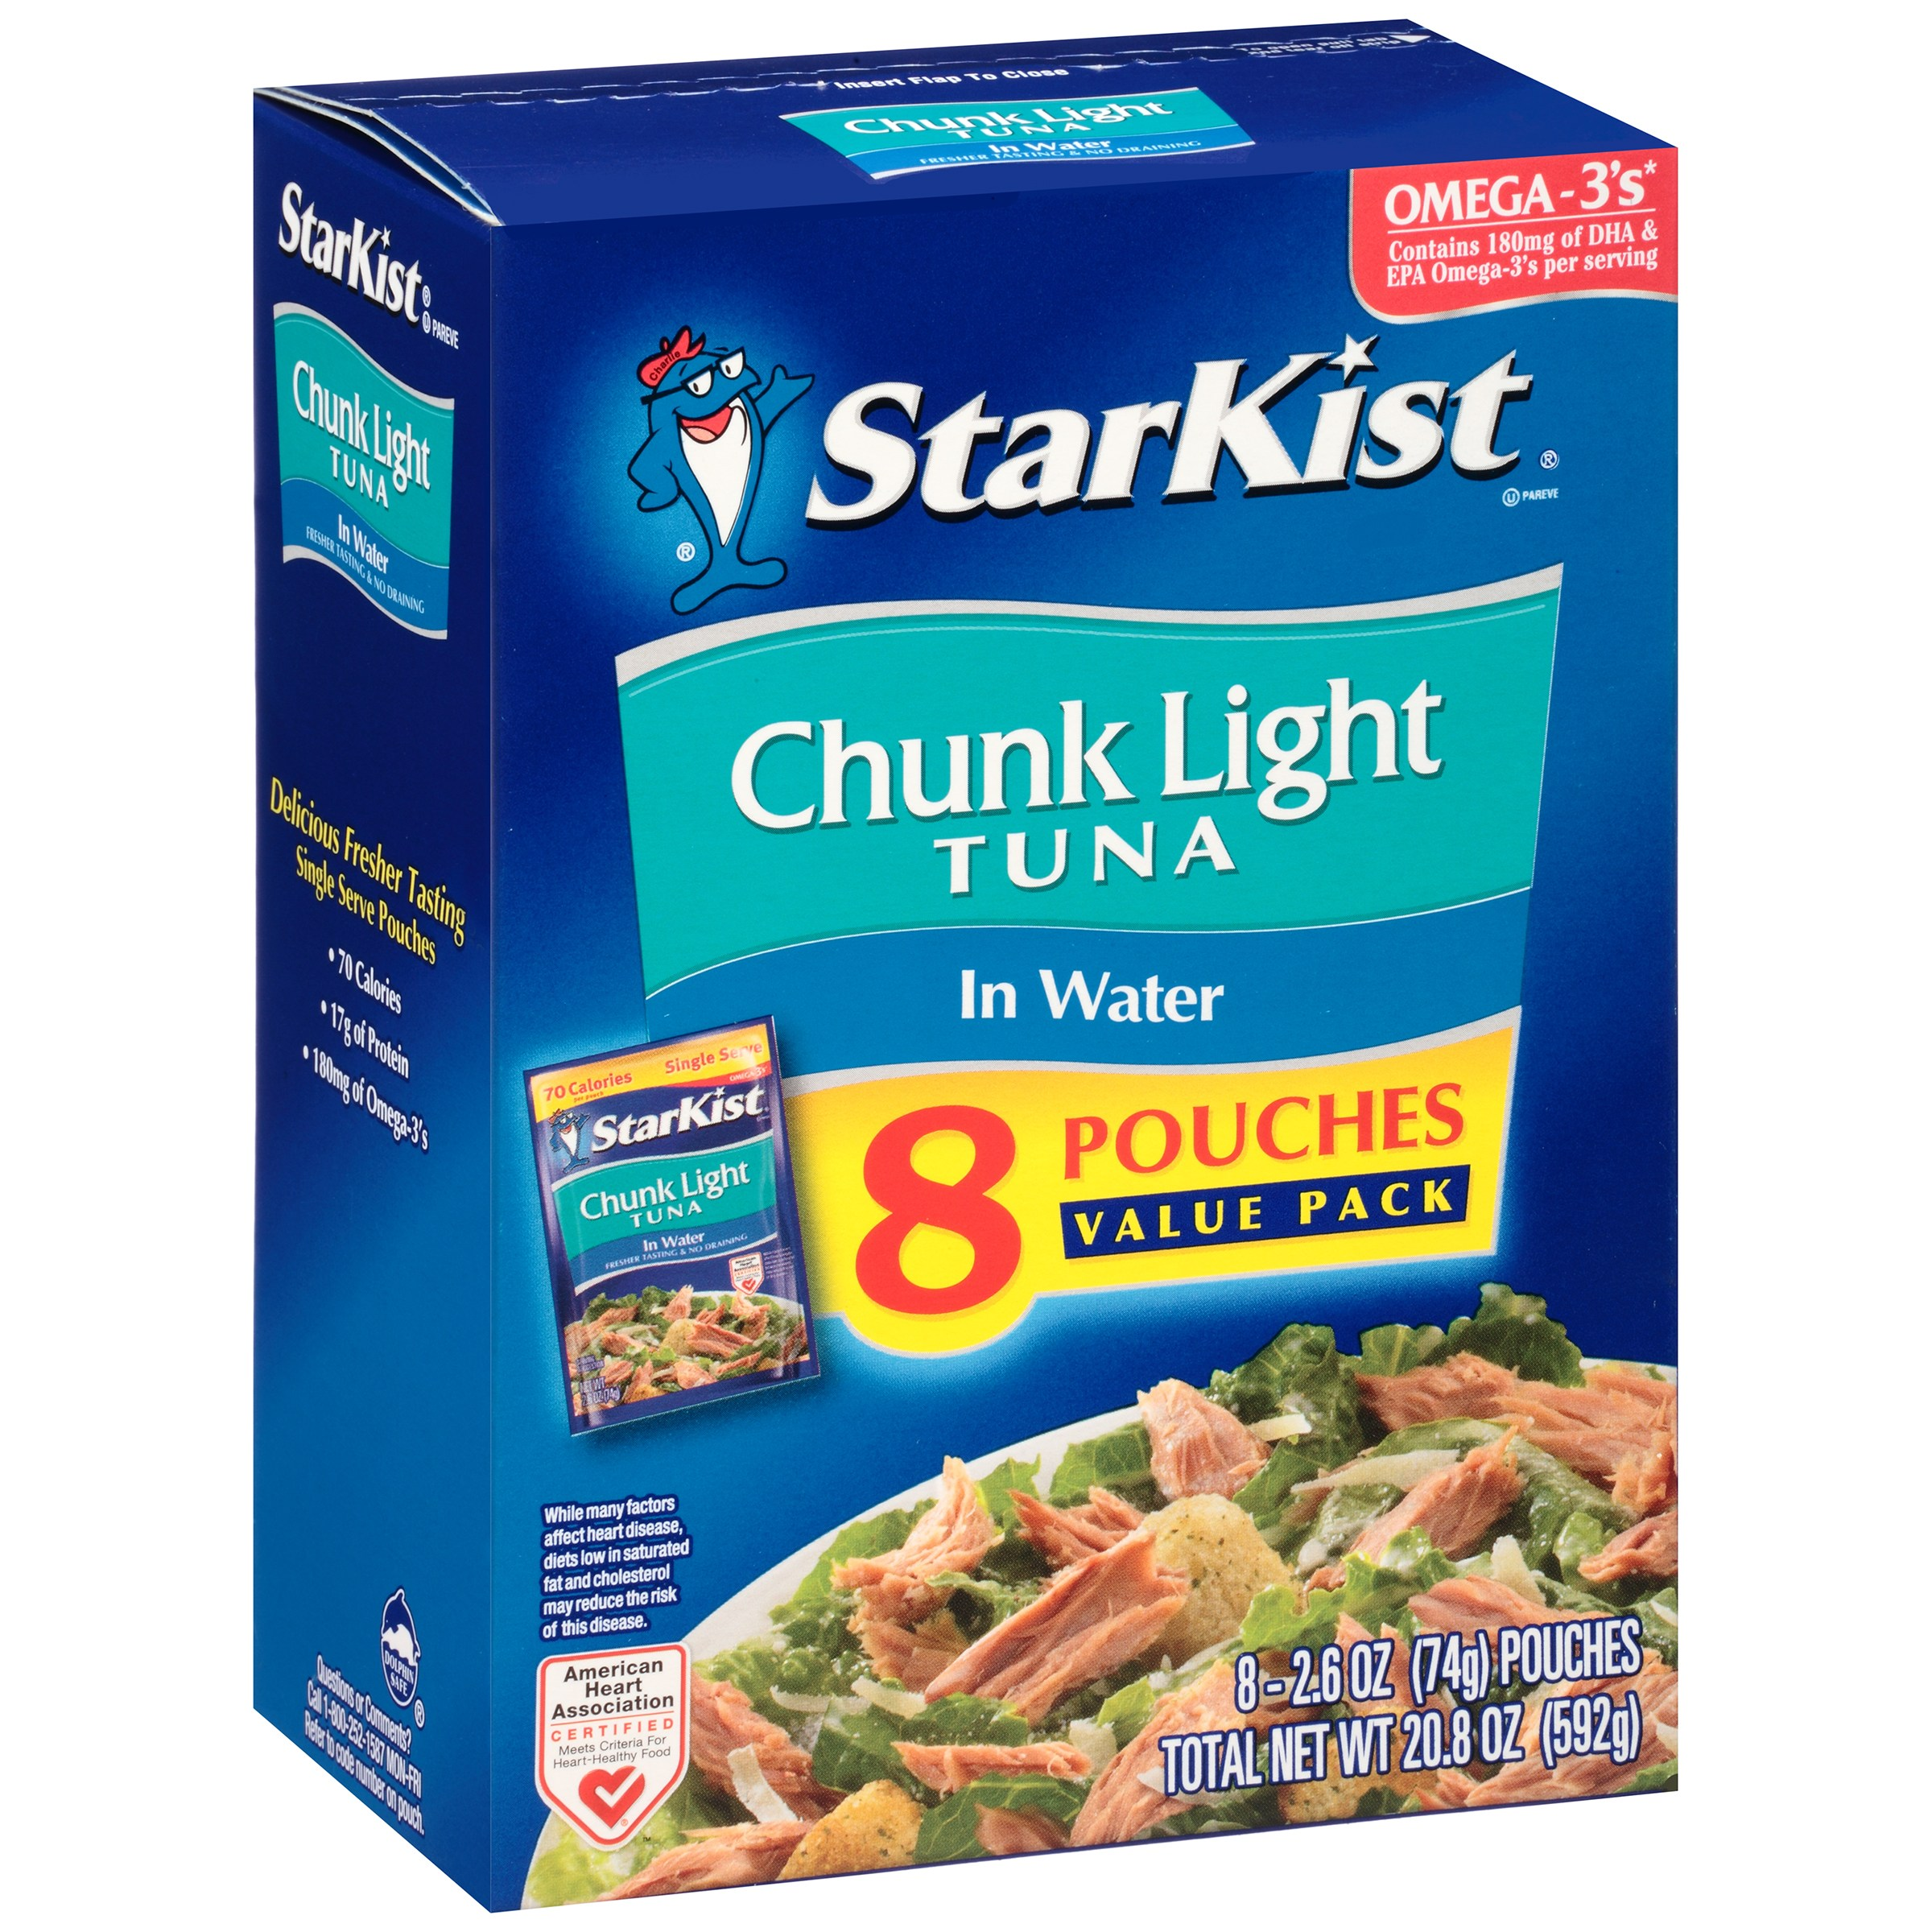 (8 Pouches) StarKist Chunk Light Tuna in Water, 2.6 oz